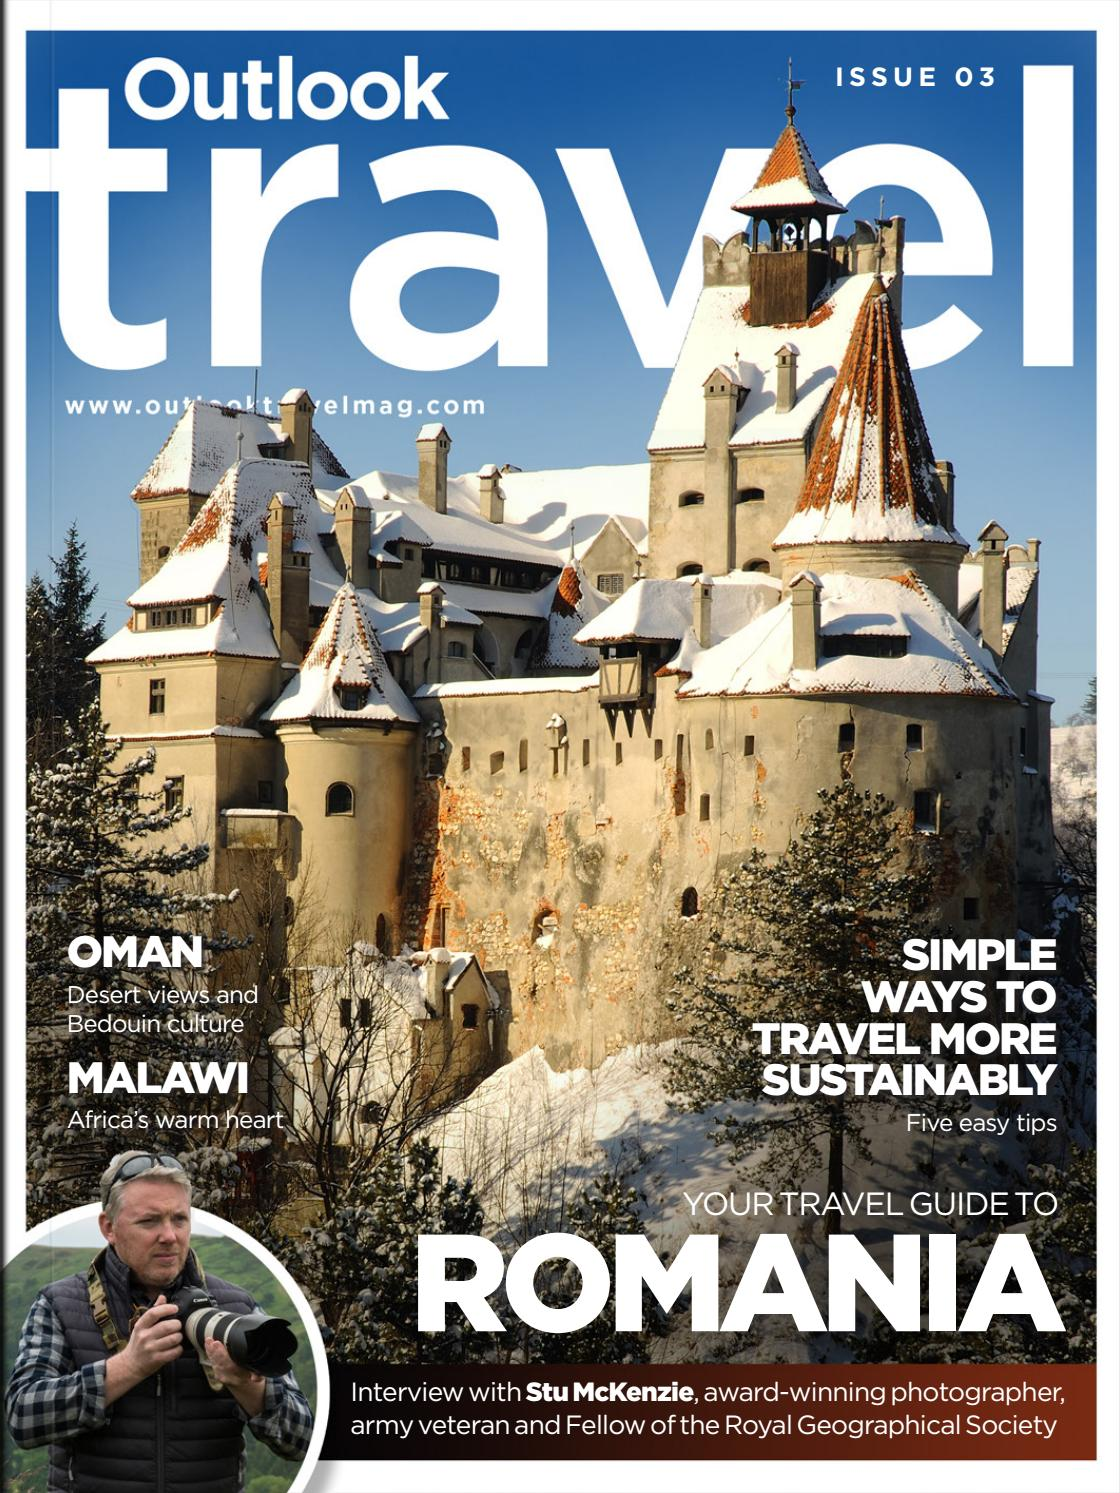 Outlook Travel magazine - issue 03 by Outlook Publishing - issuu